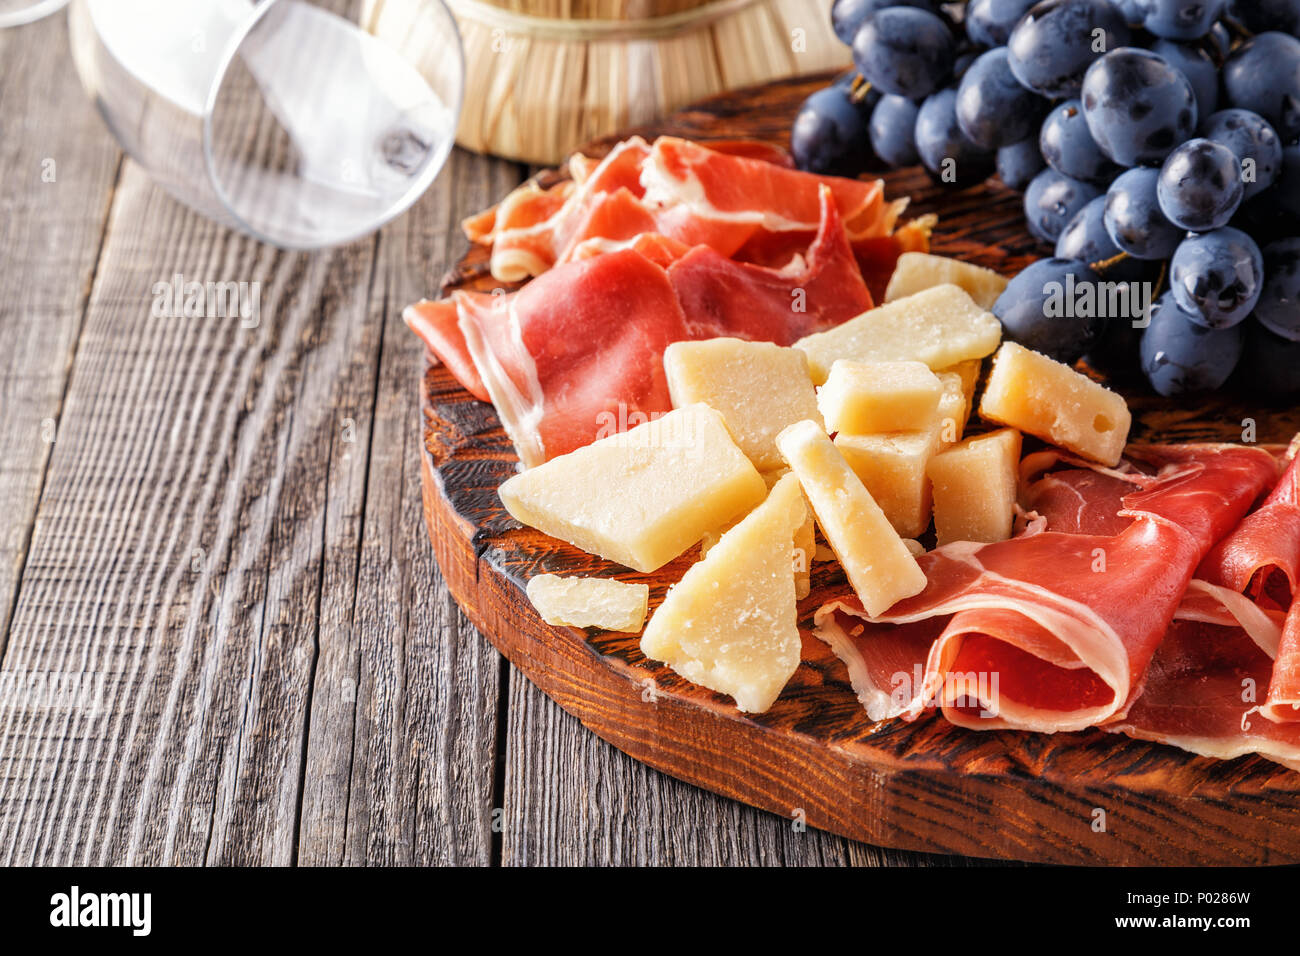 Prosciutto, wine, grape, parmesan on wooden table, selective focus. - Stock Image